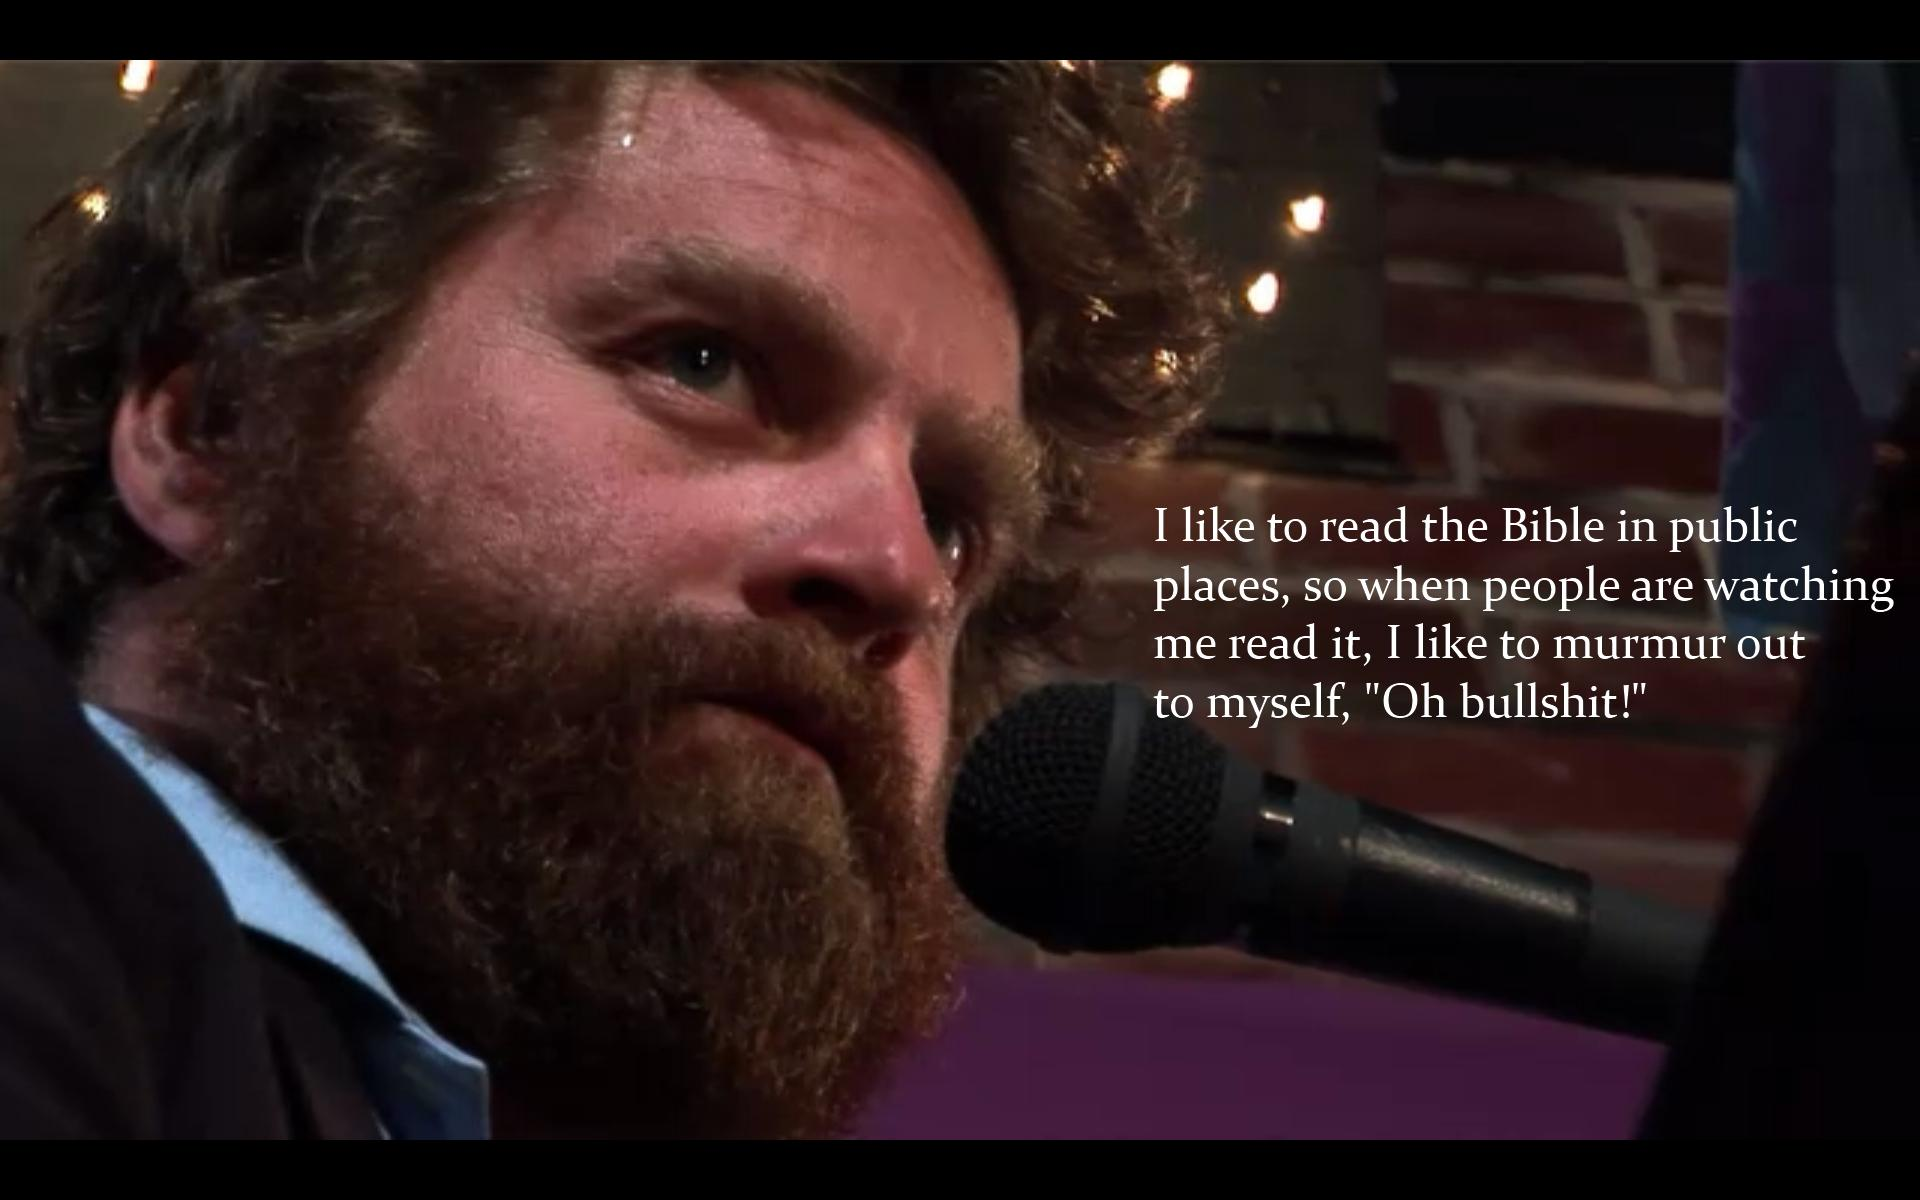 Zach Galifianakis's quote #3